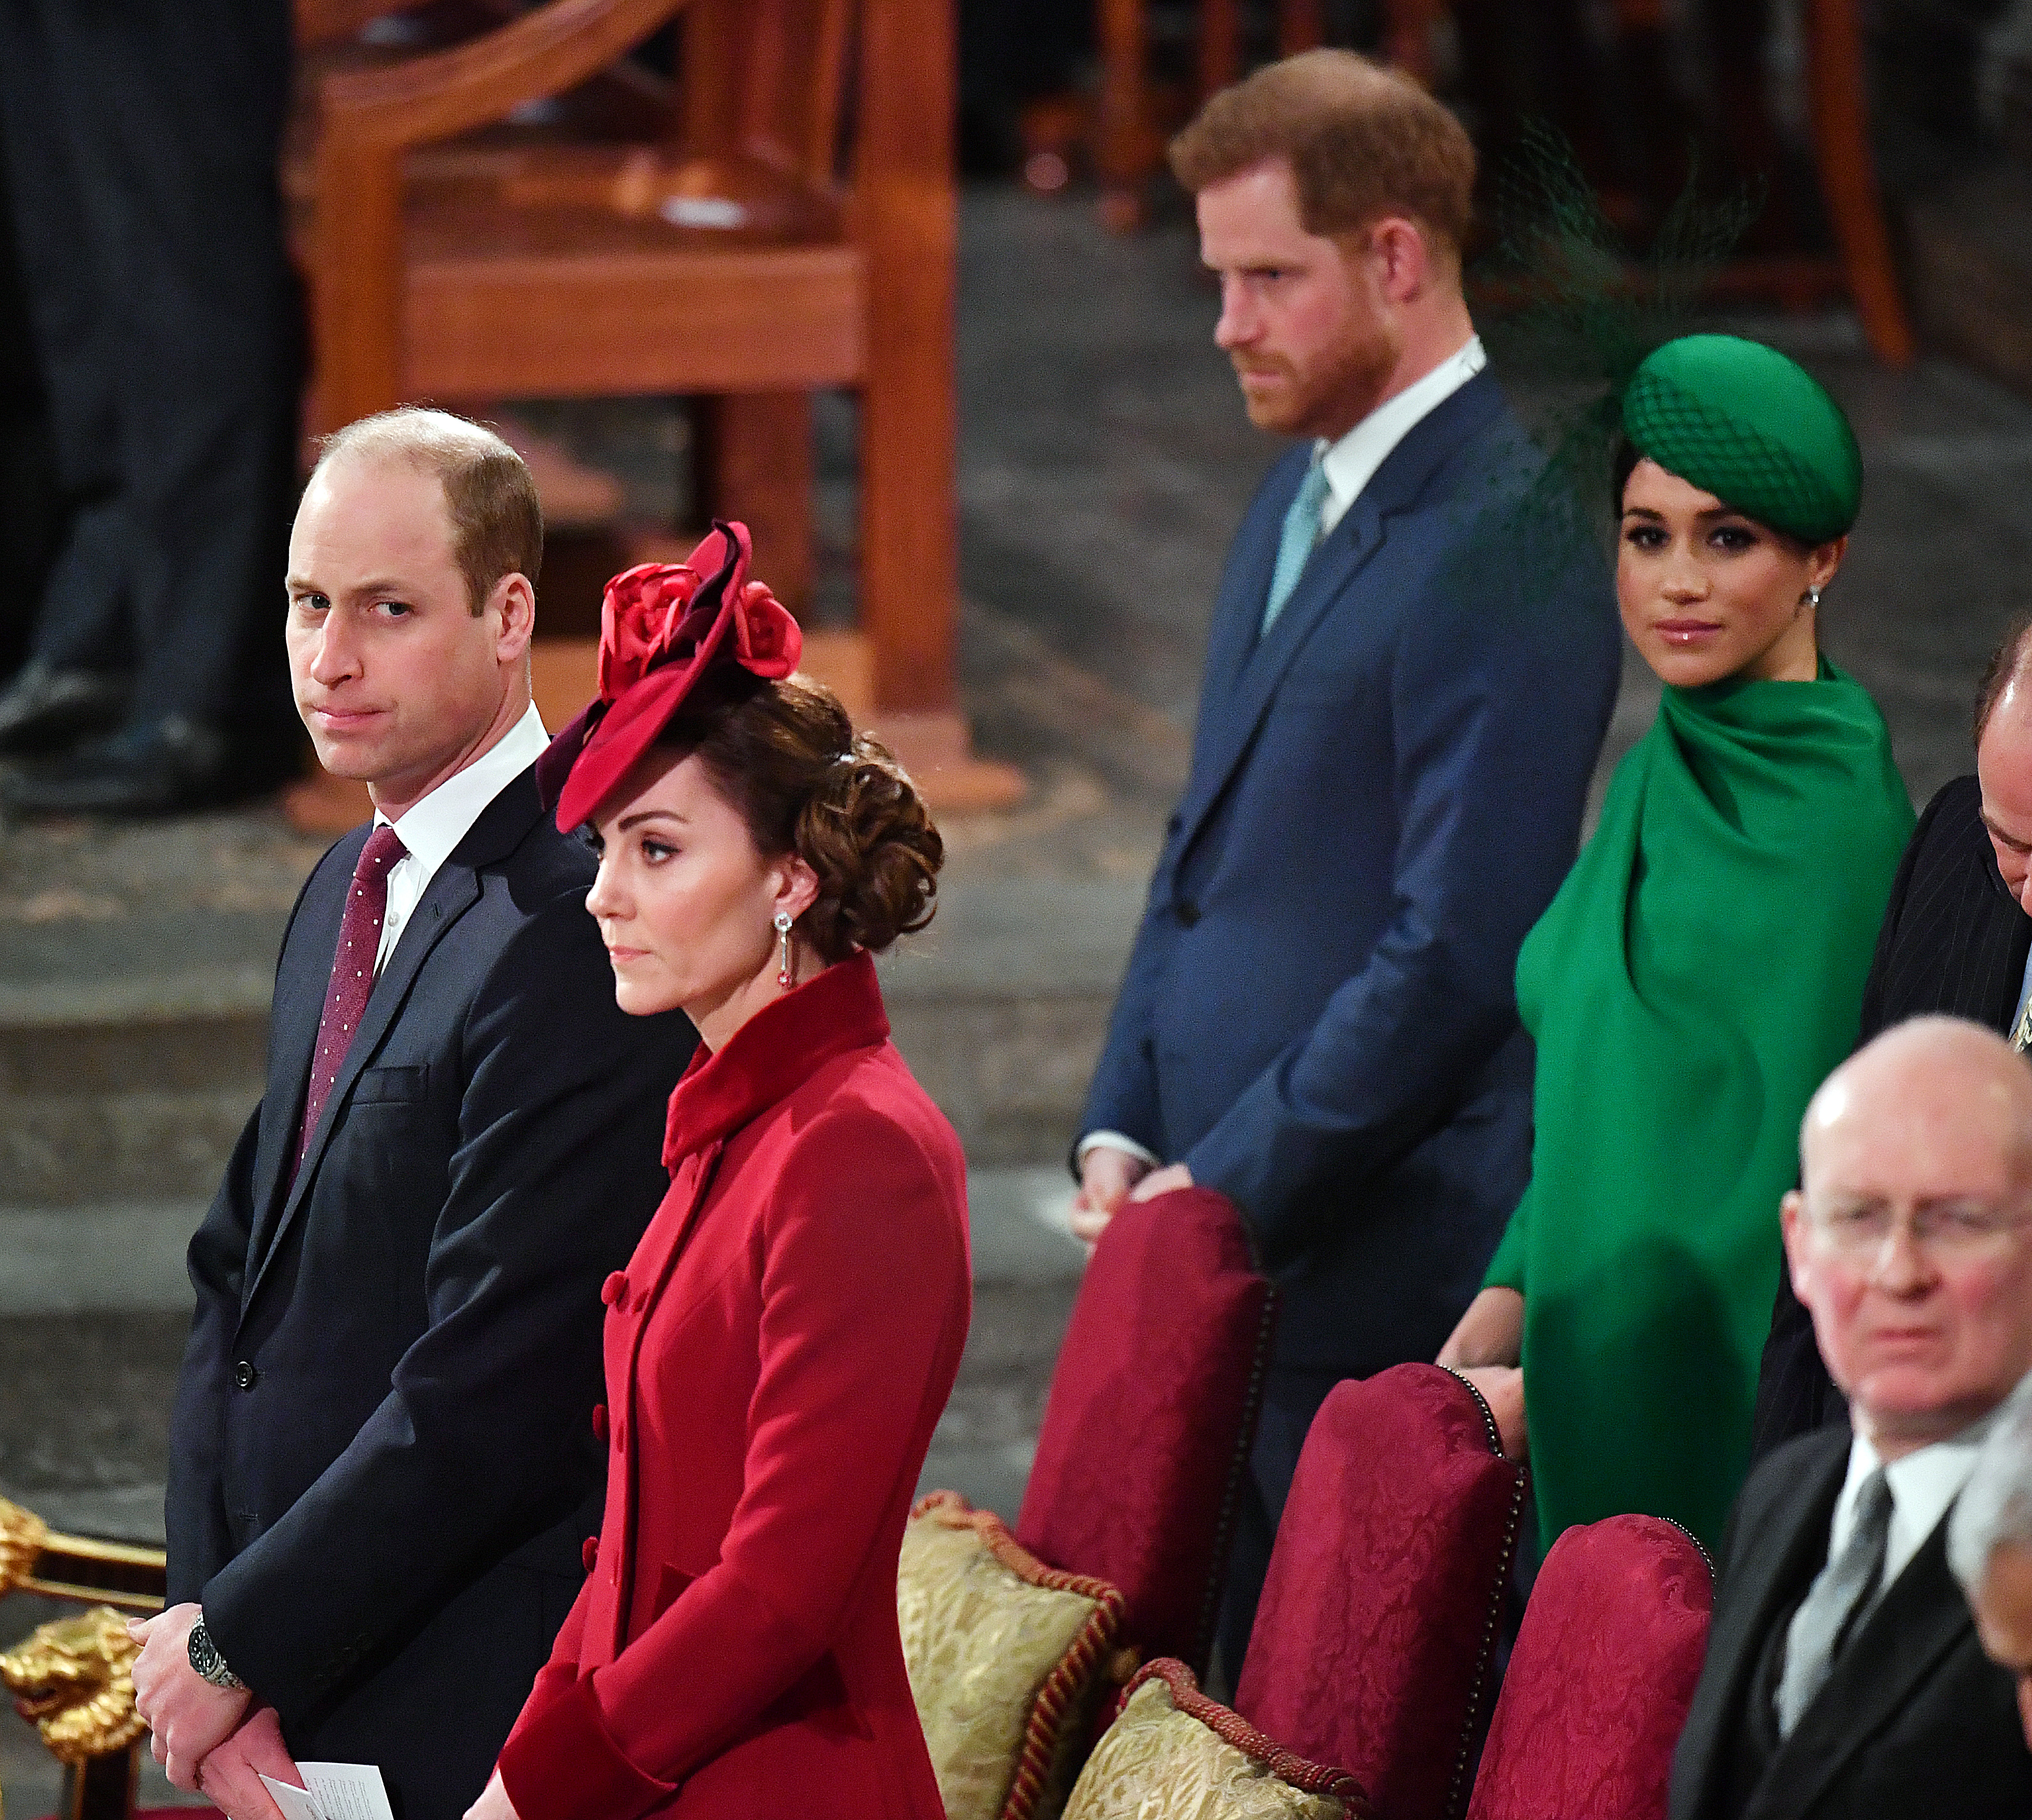 Prince William, Duke of Cambridge, Catherine, Duchess of Cambridge, Prince Harry, Duke of Sussex and Meghan, Duchess of Sussex attend the Commonwealth Day Service 2020 on March 9, in London, England. (Phil Harris/WPA Pool/Getty Images)